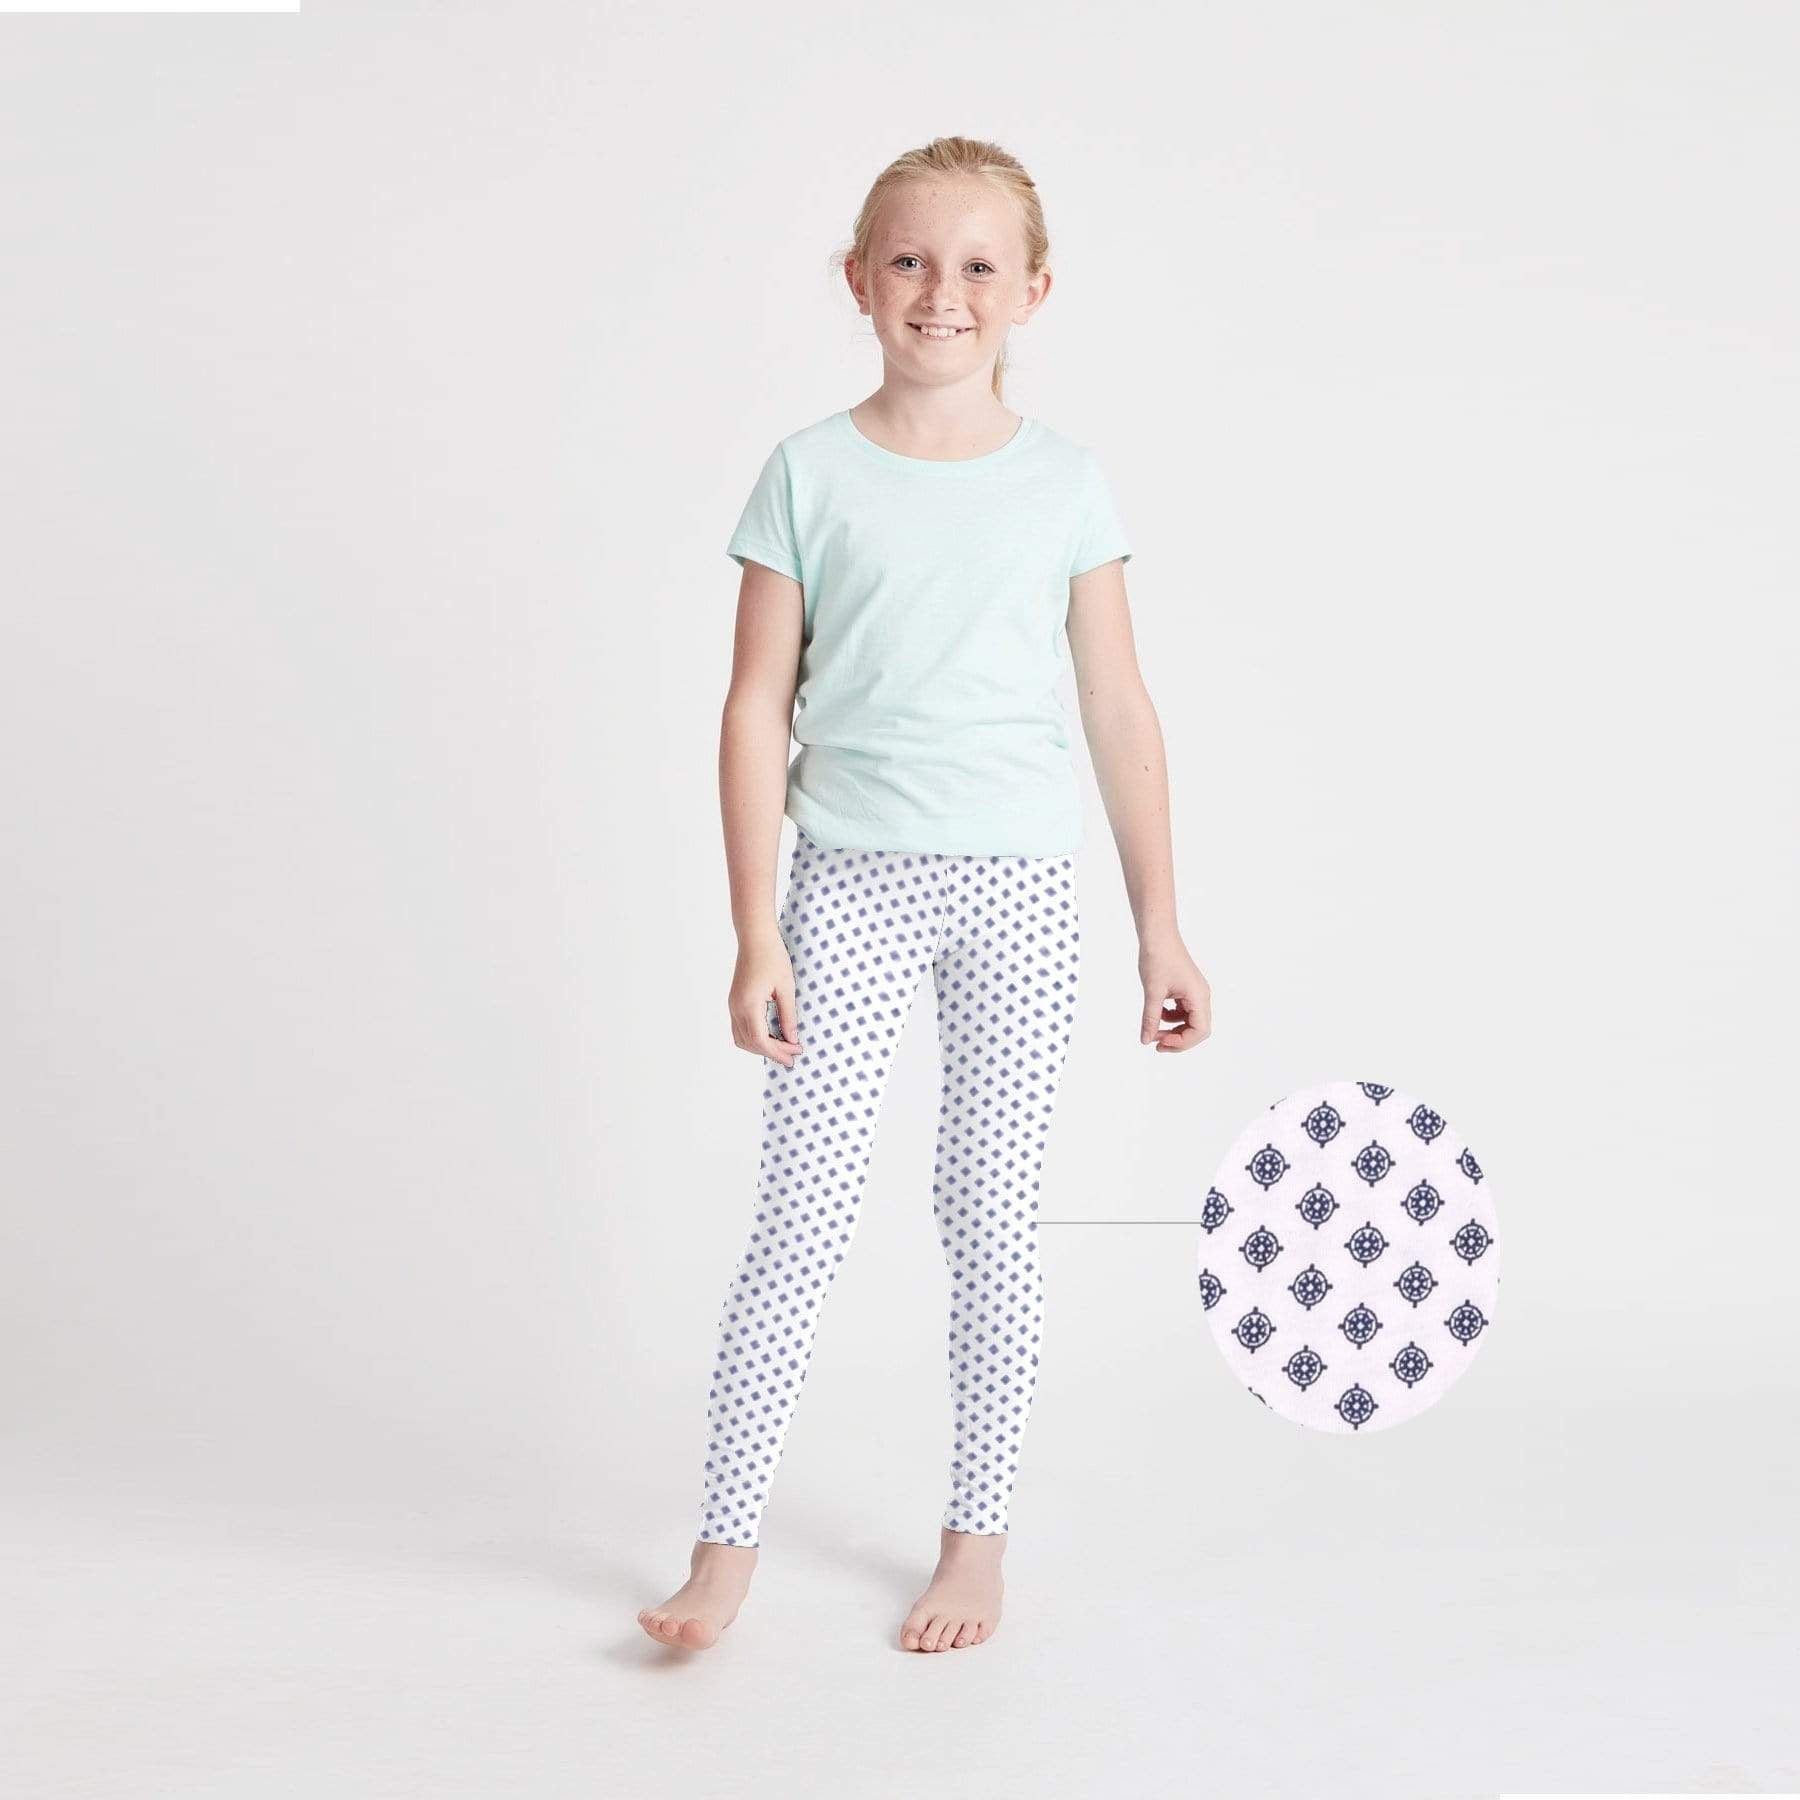 Stone Harbor Girl's Leggings White / 2-3 Years Girl's Stone Harbor Allover Dot Print Leggings